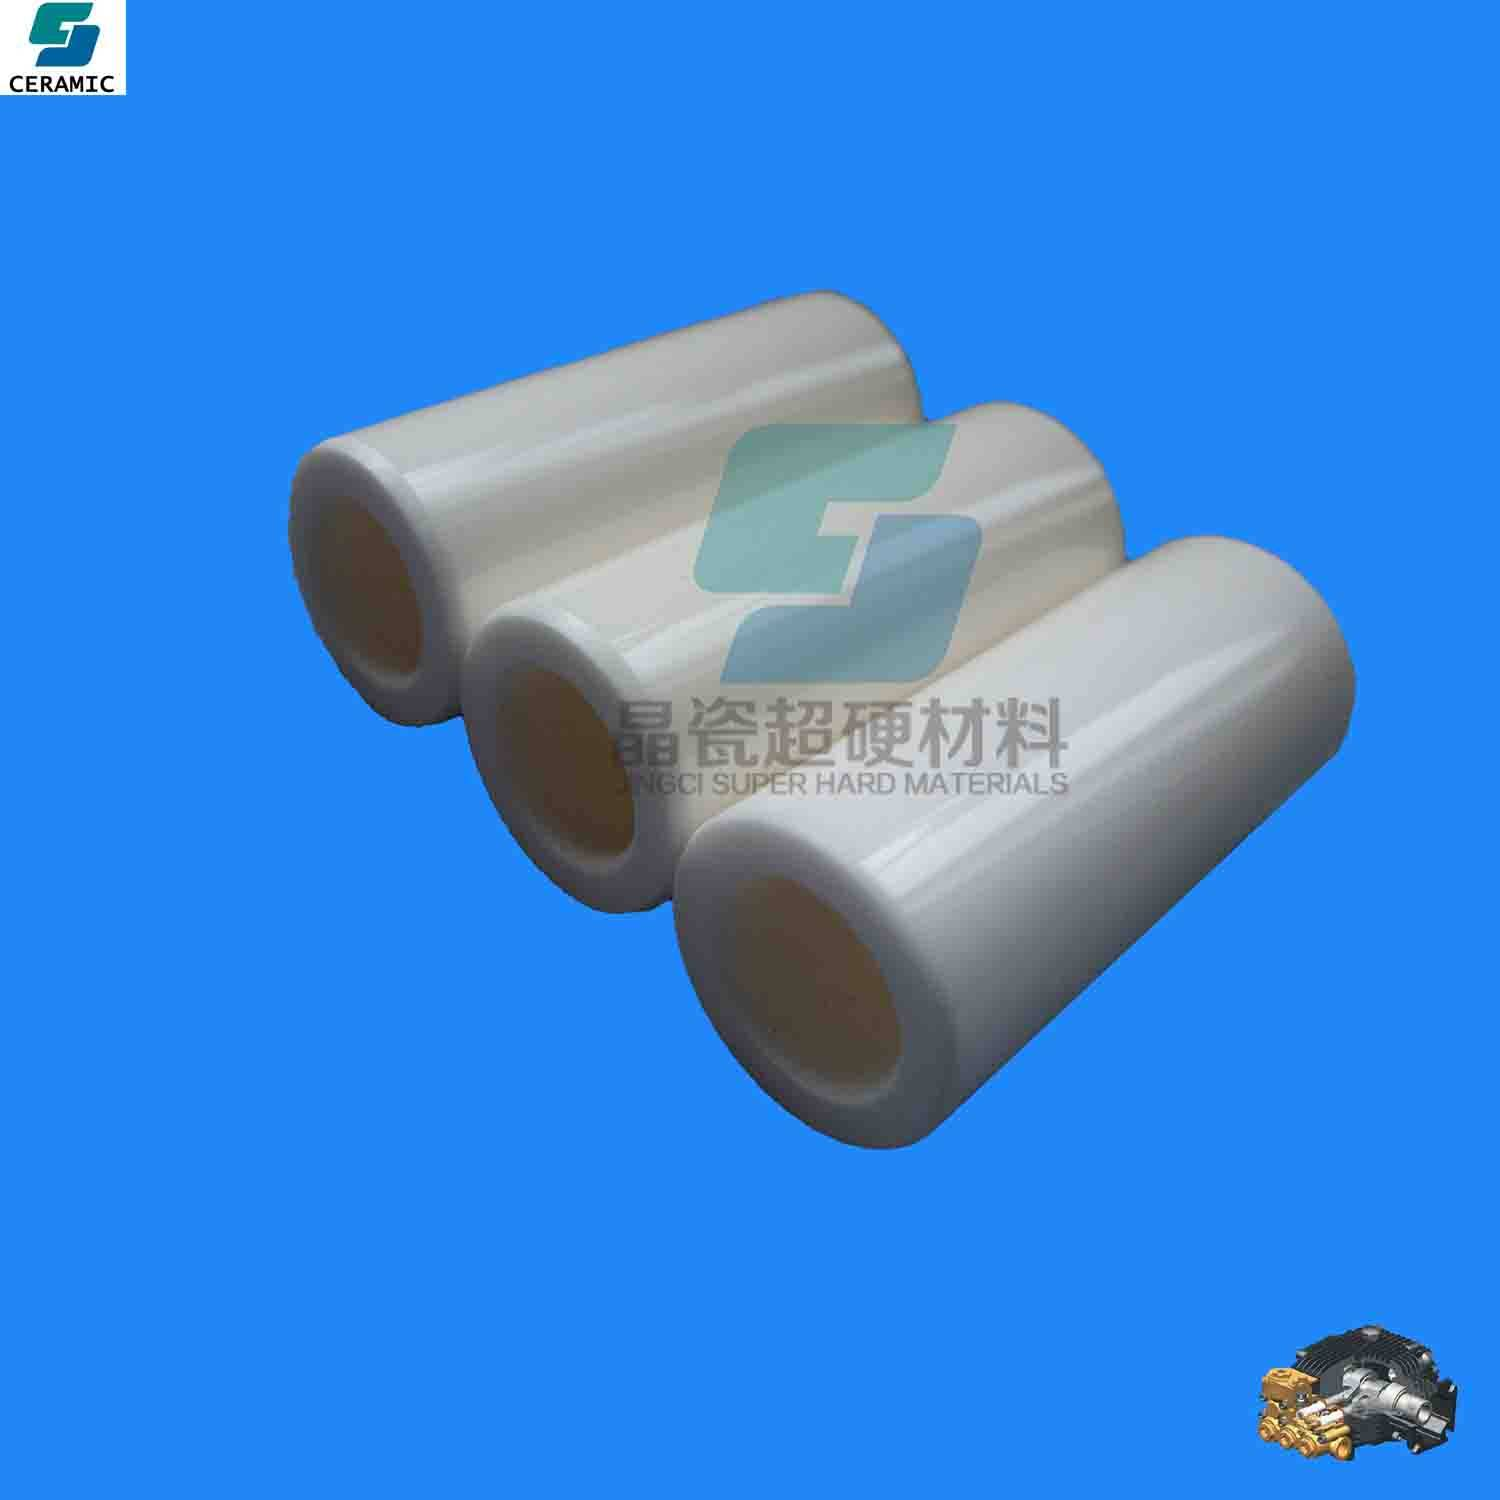 fine ceramic plunger with cleaning equipment parts